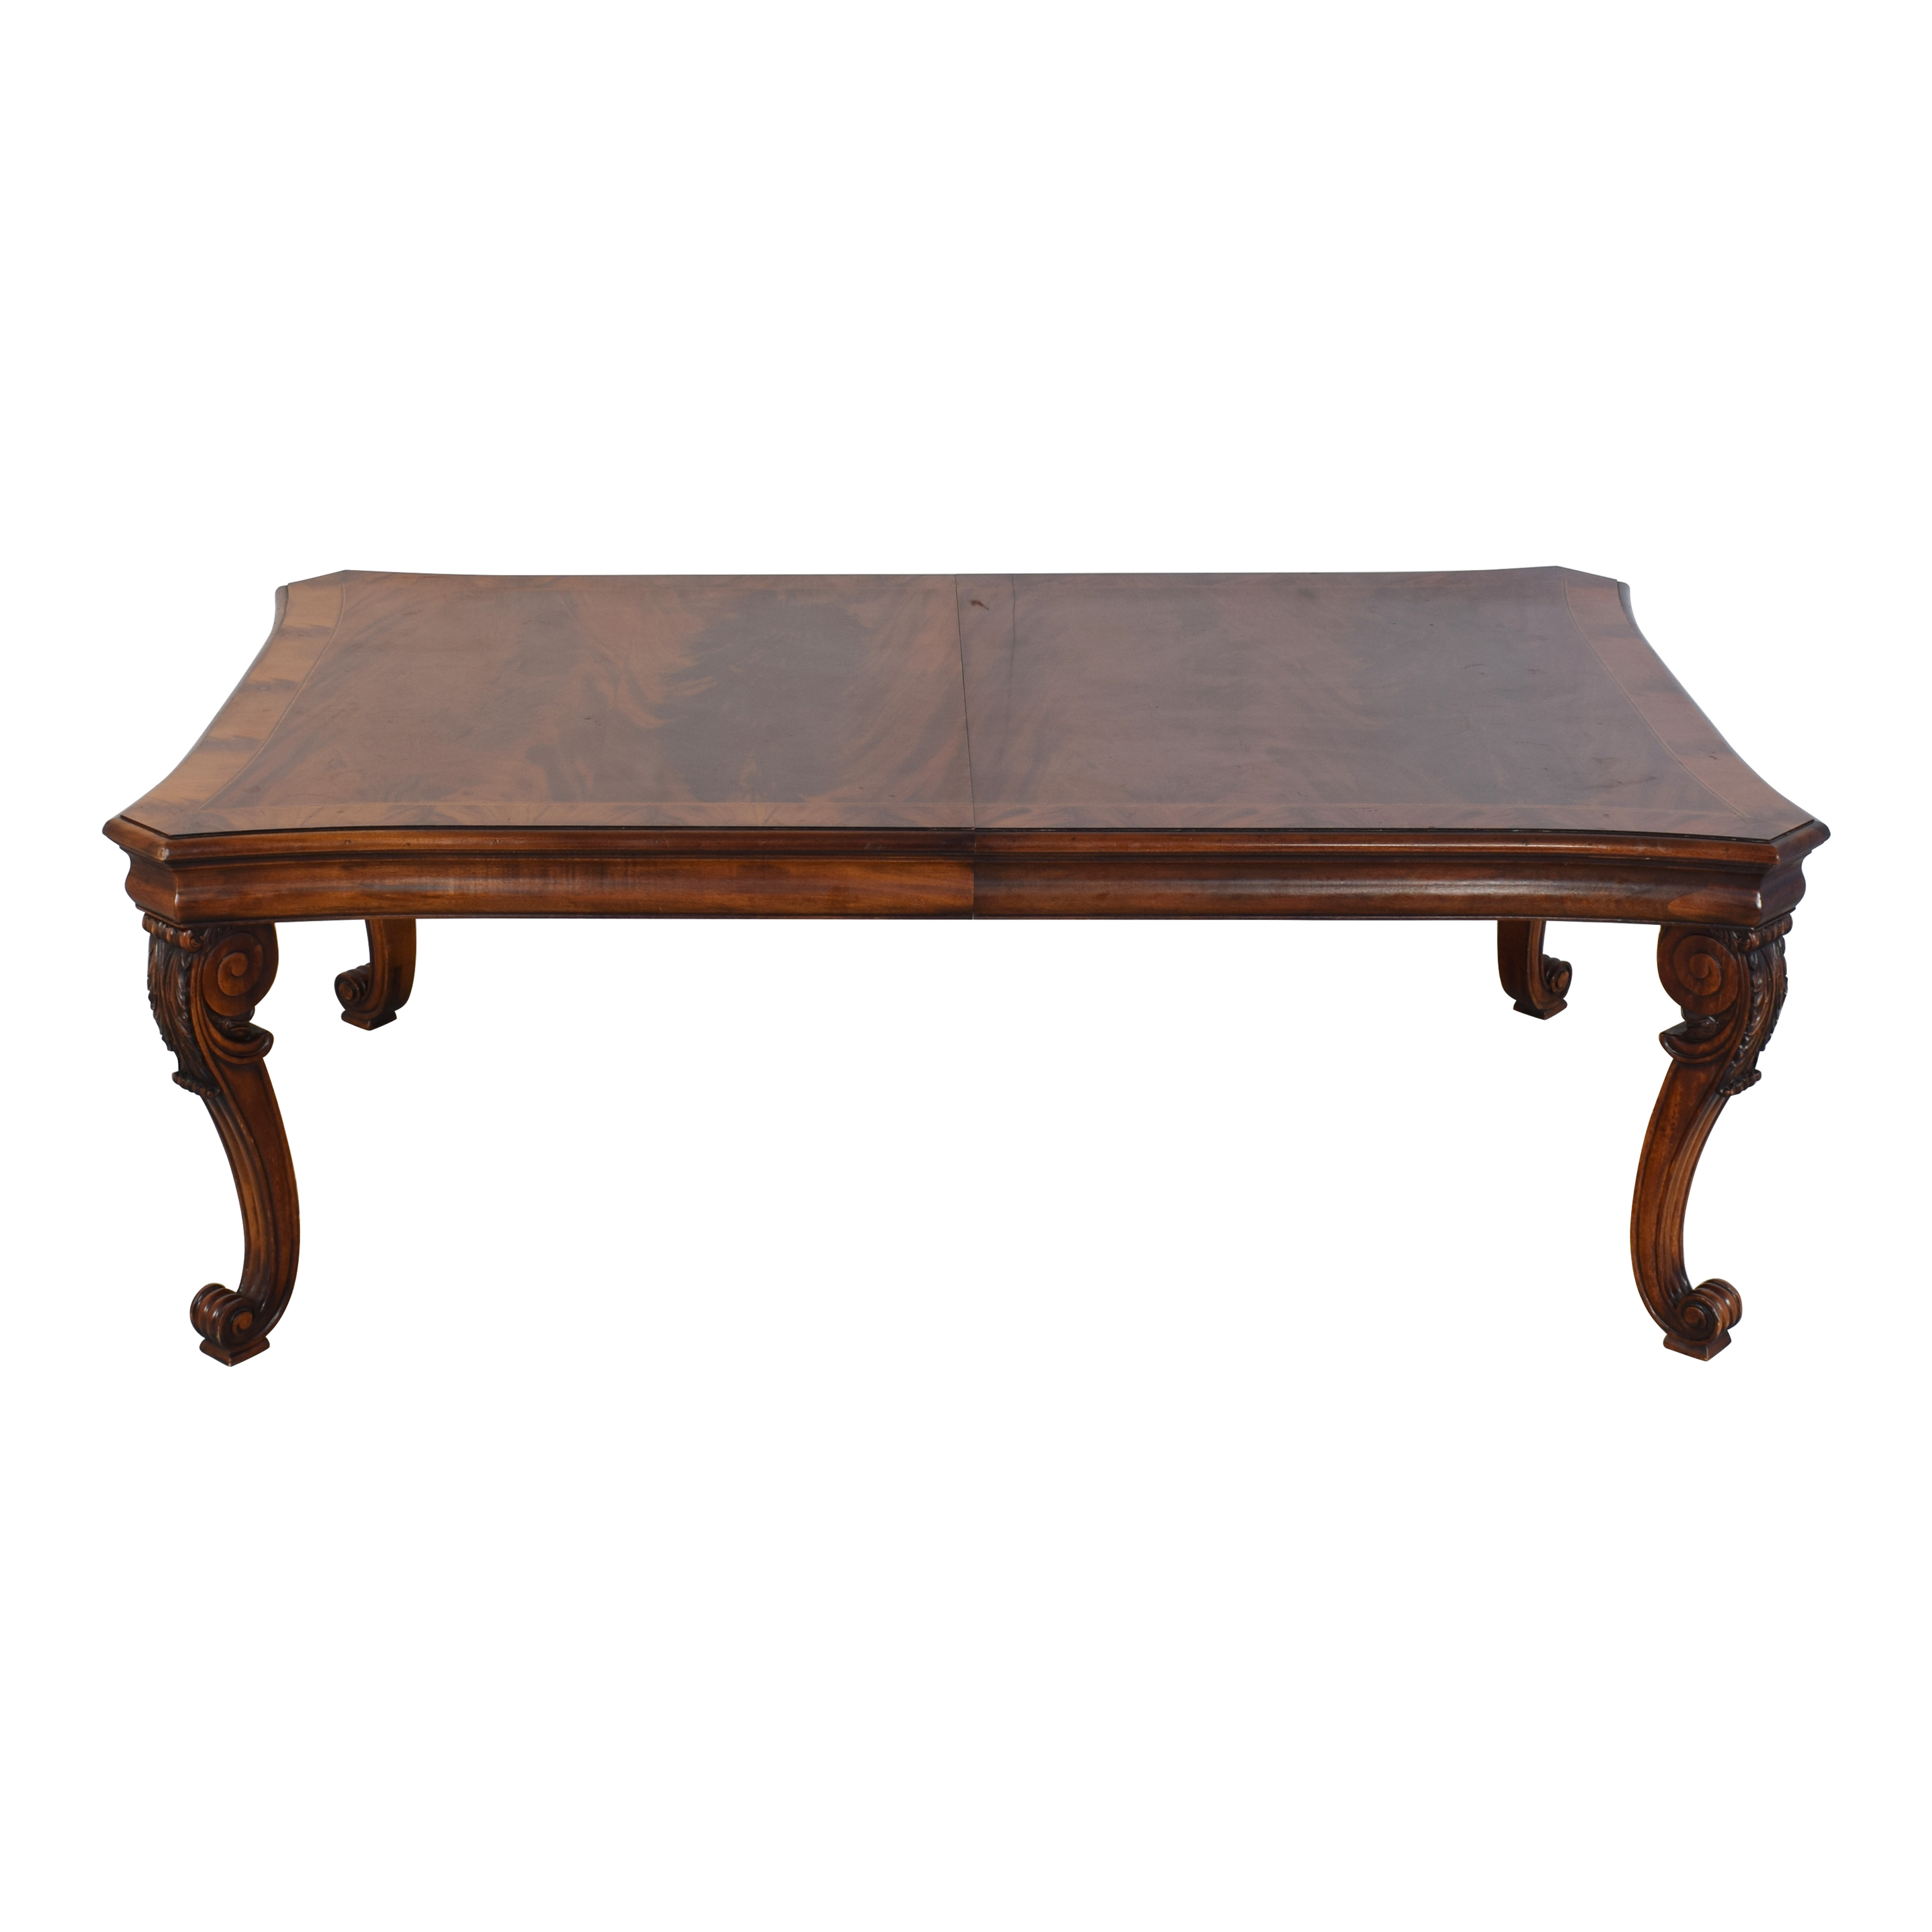 buy Ralph Lauren Home Beekman Mahogany Dining Table with Two Additional Leaves Ralph Lauren Home